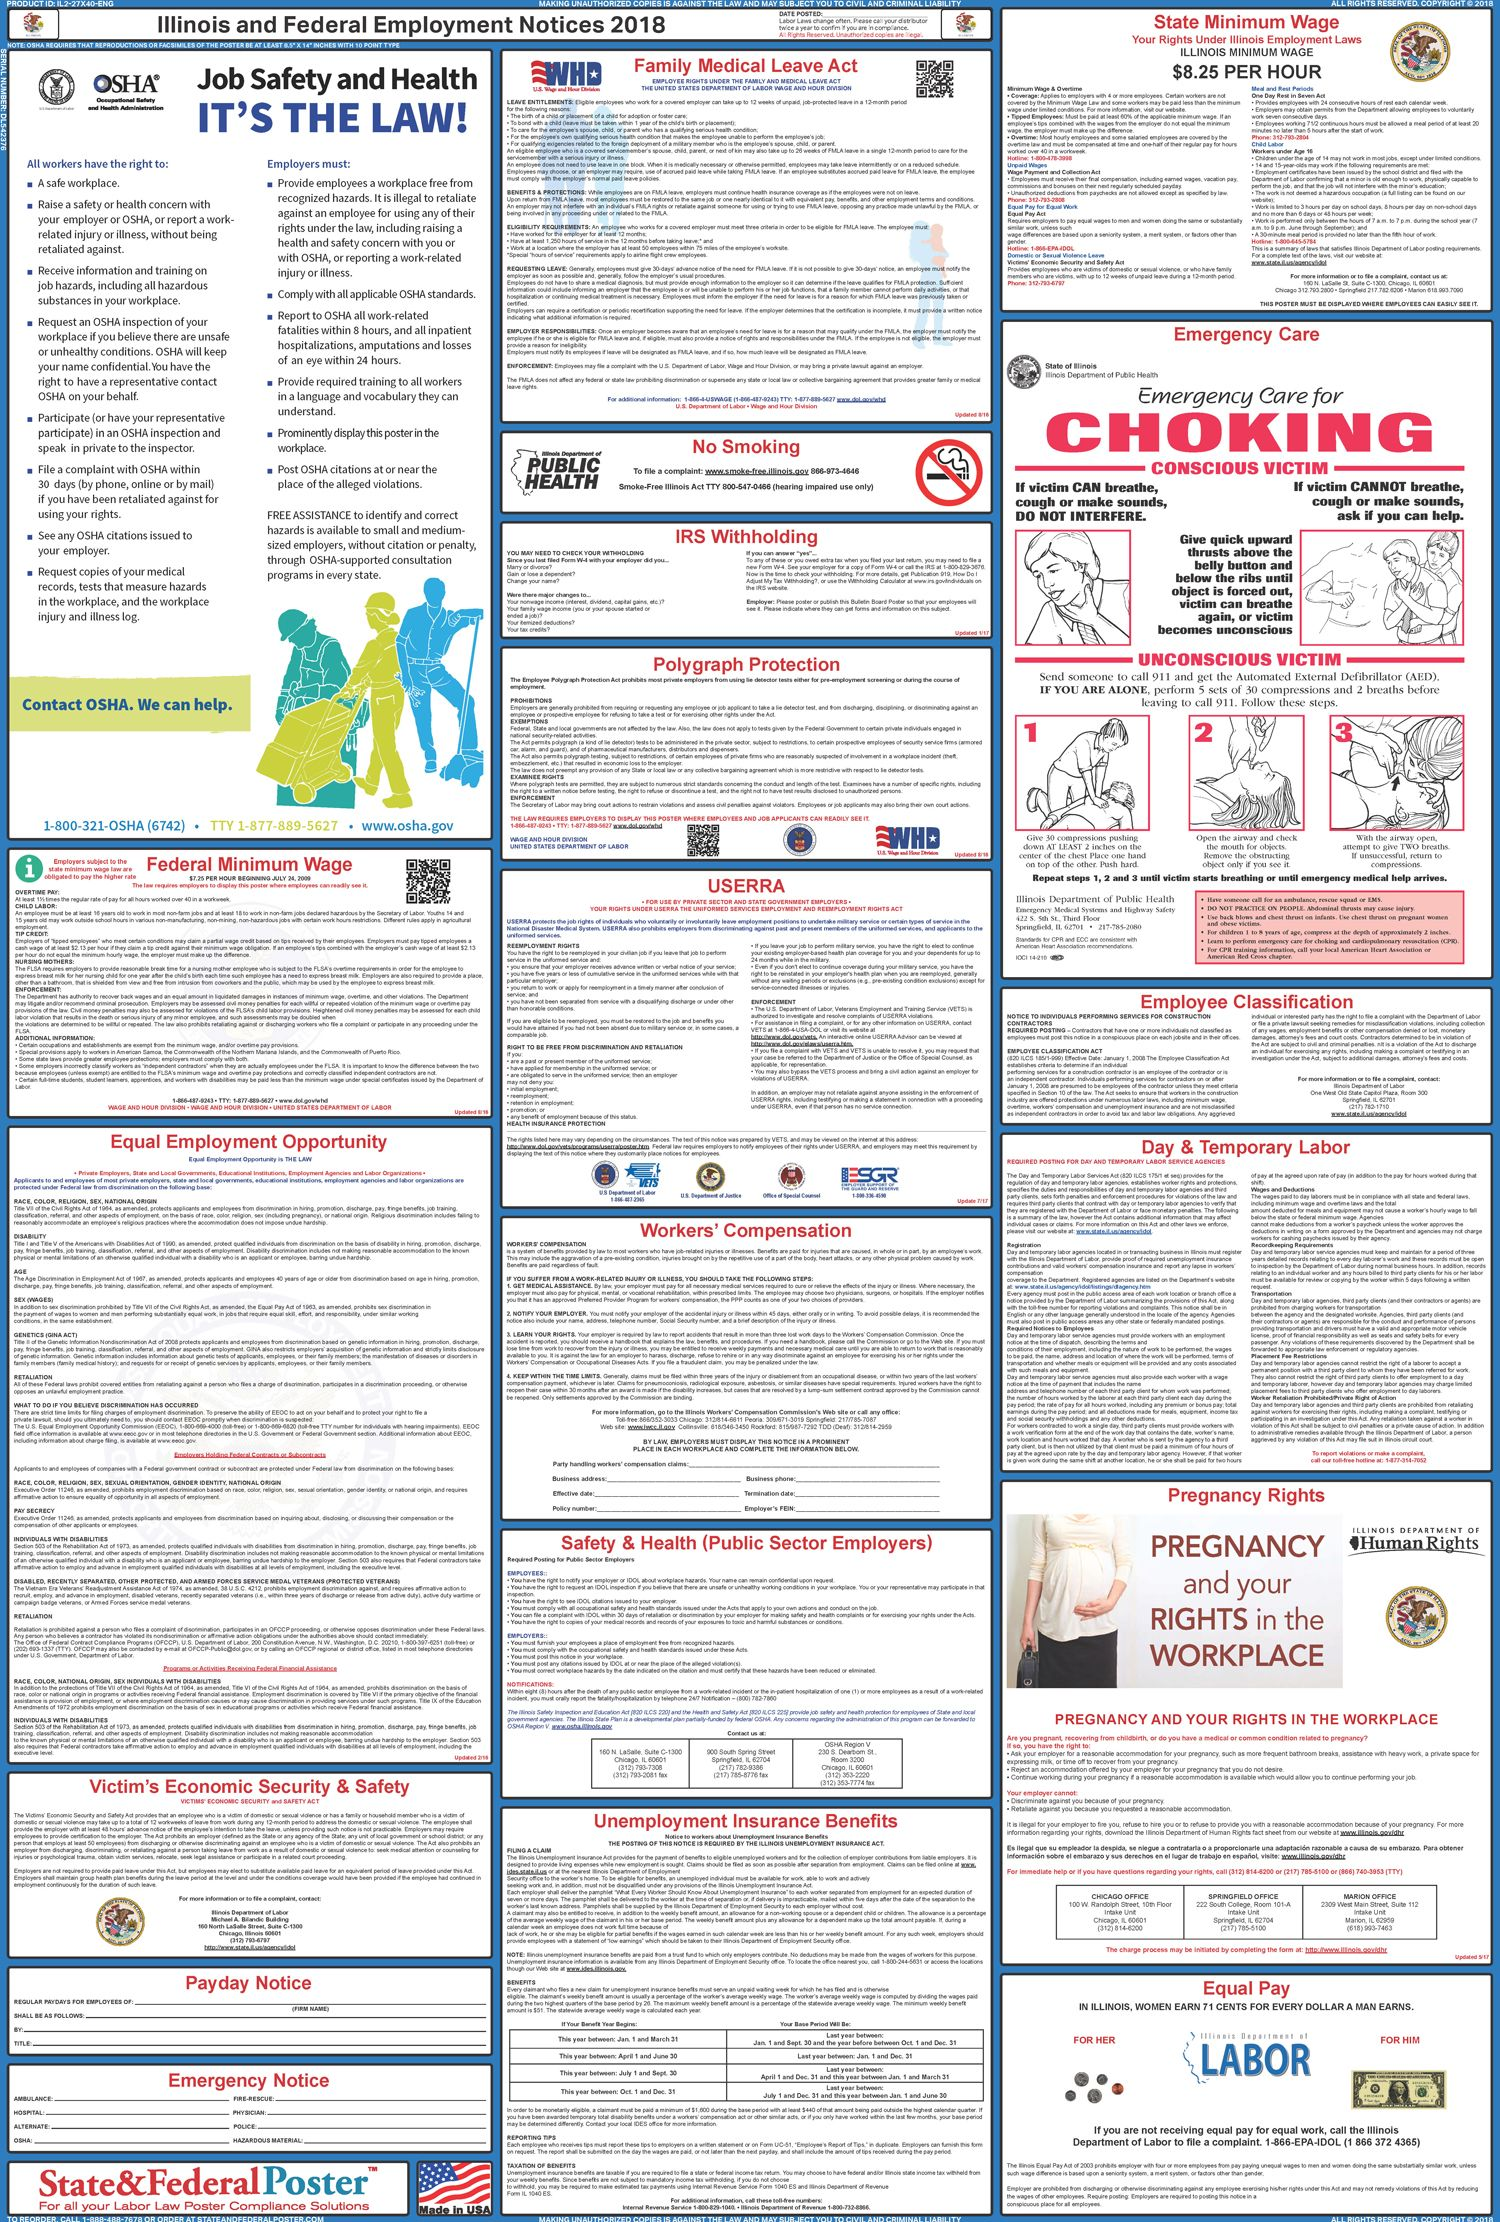 Illinois State And Federal Labor Law Poster 2017 2018 Labor Law